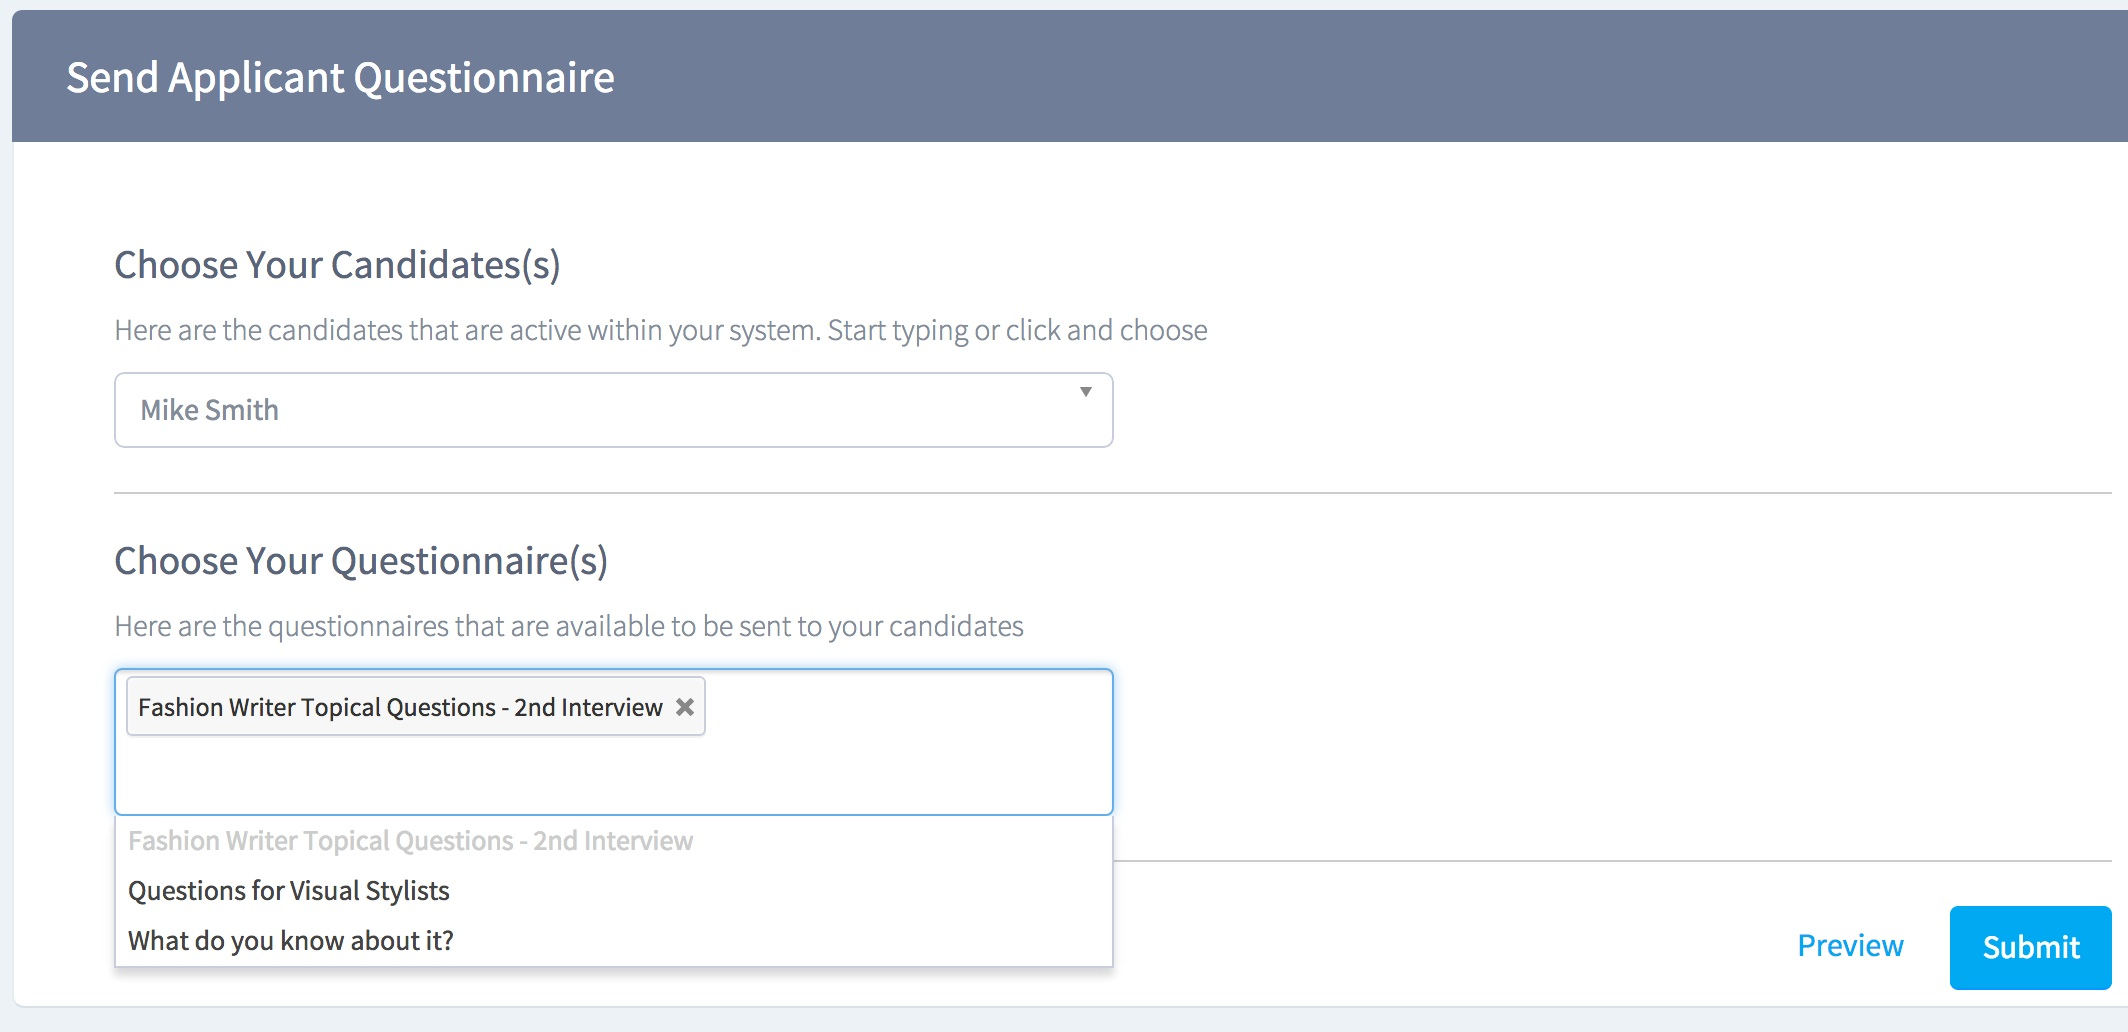 creating sending an applicant questionnaire trinet cloud help desk select the submit button to send the questionnaire